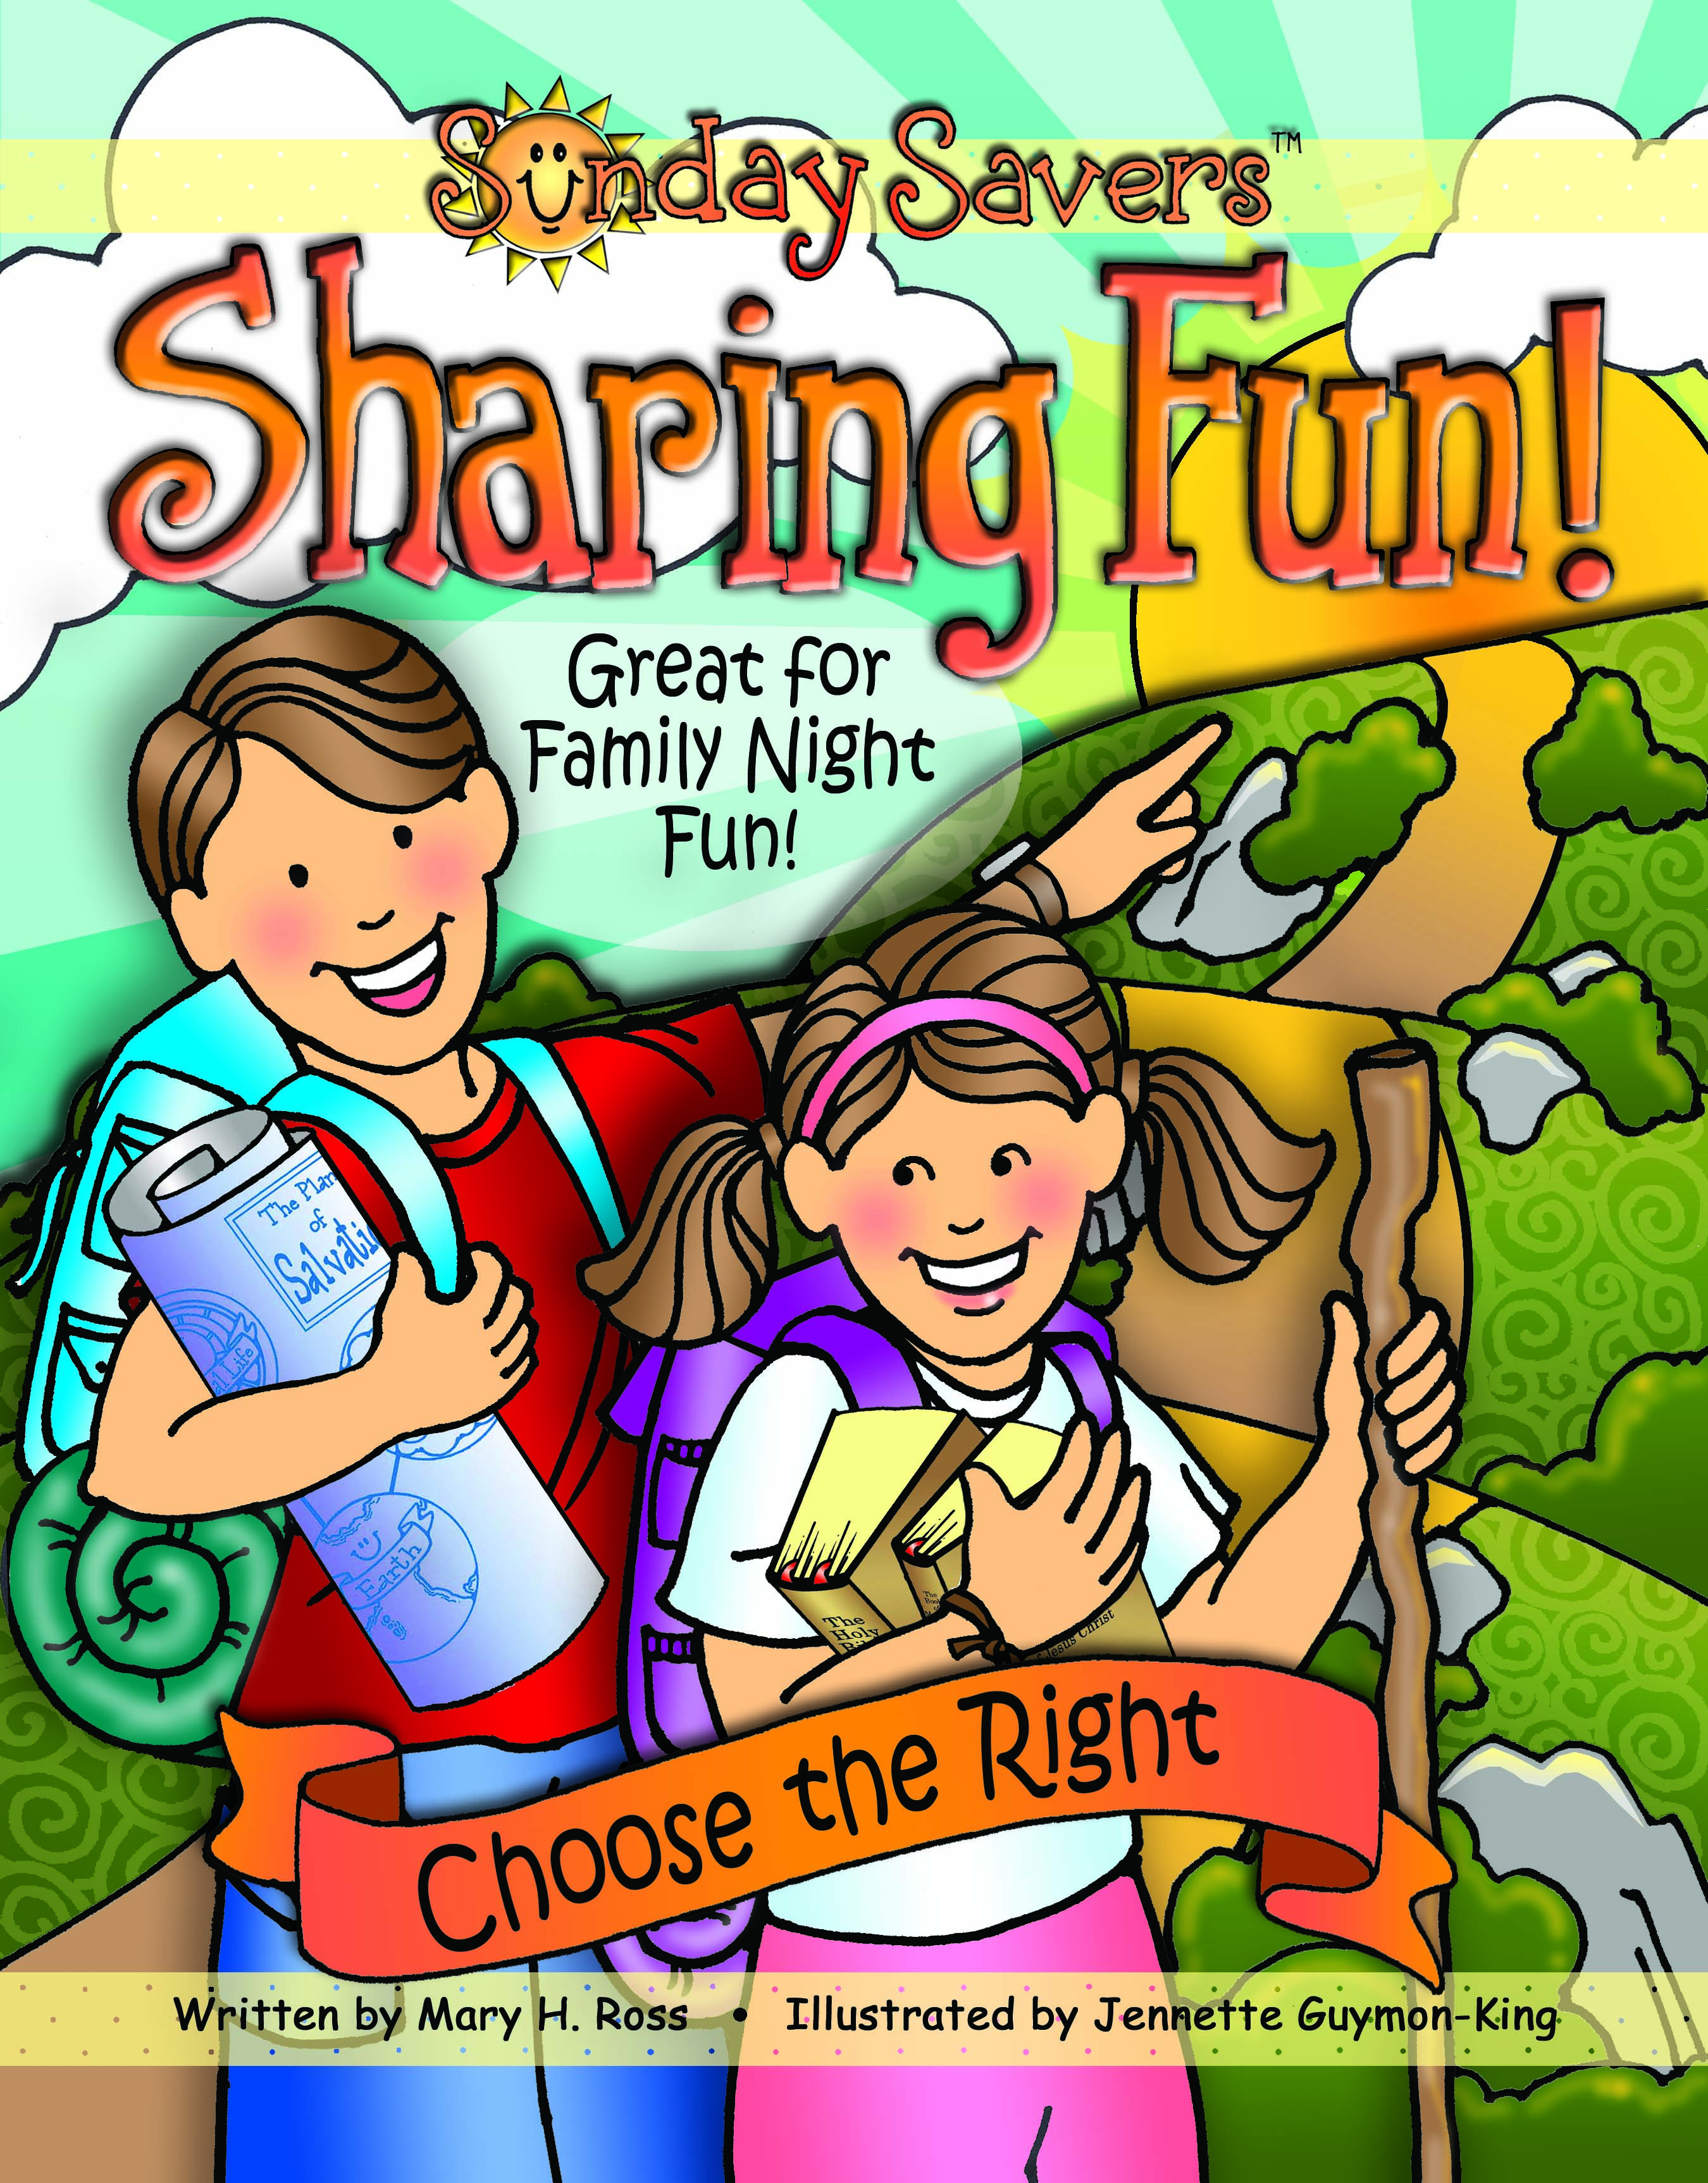 SHARING TIME 2017 Choose the Right theme, Sunday Savers Sharing Fun, Mary H. Ross, Jennette Guymon King, book or CD-ROM, gospelgrabbag.com